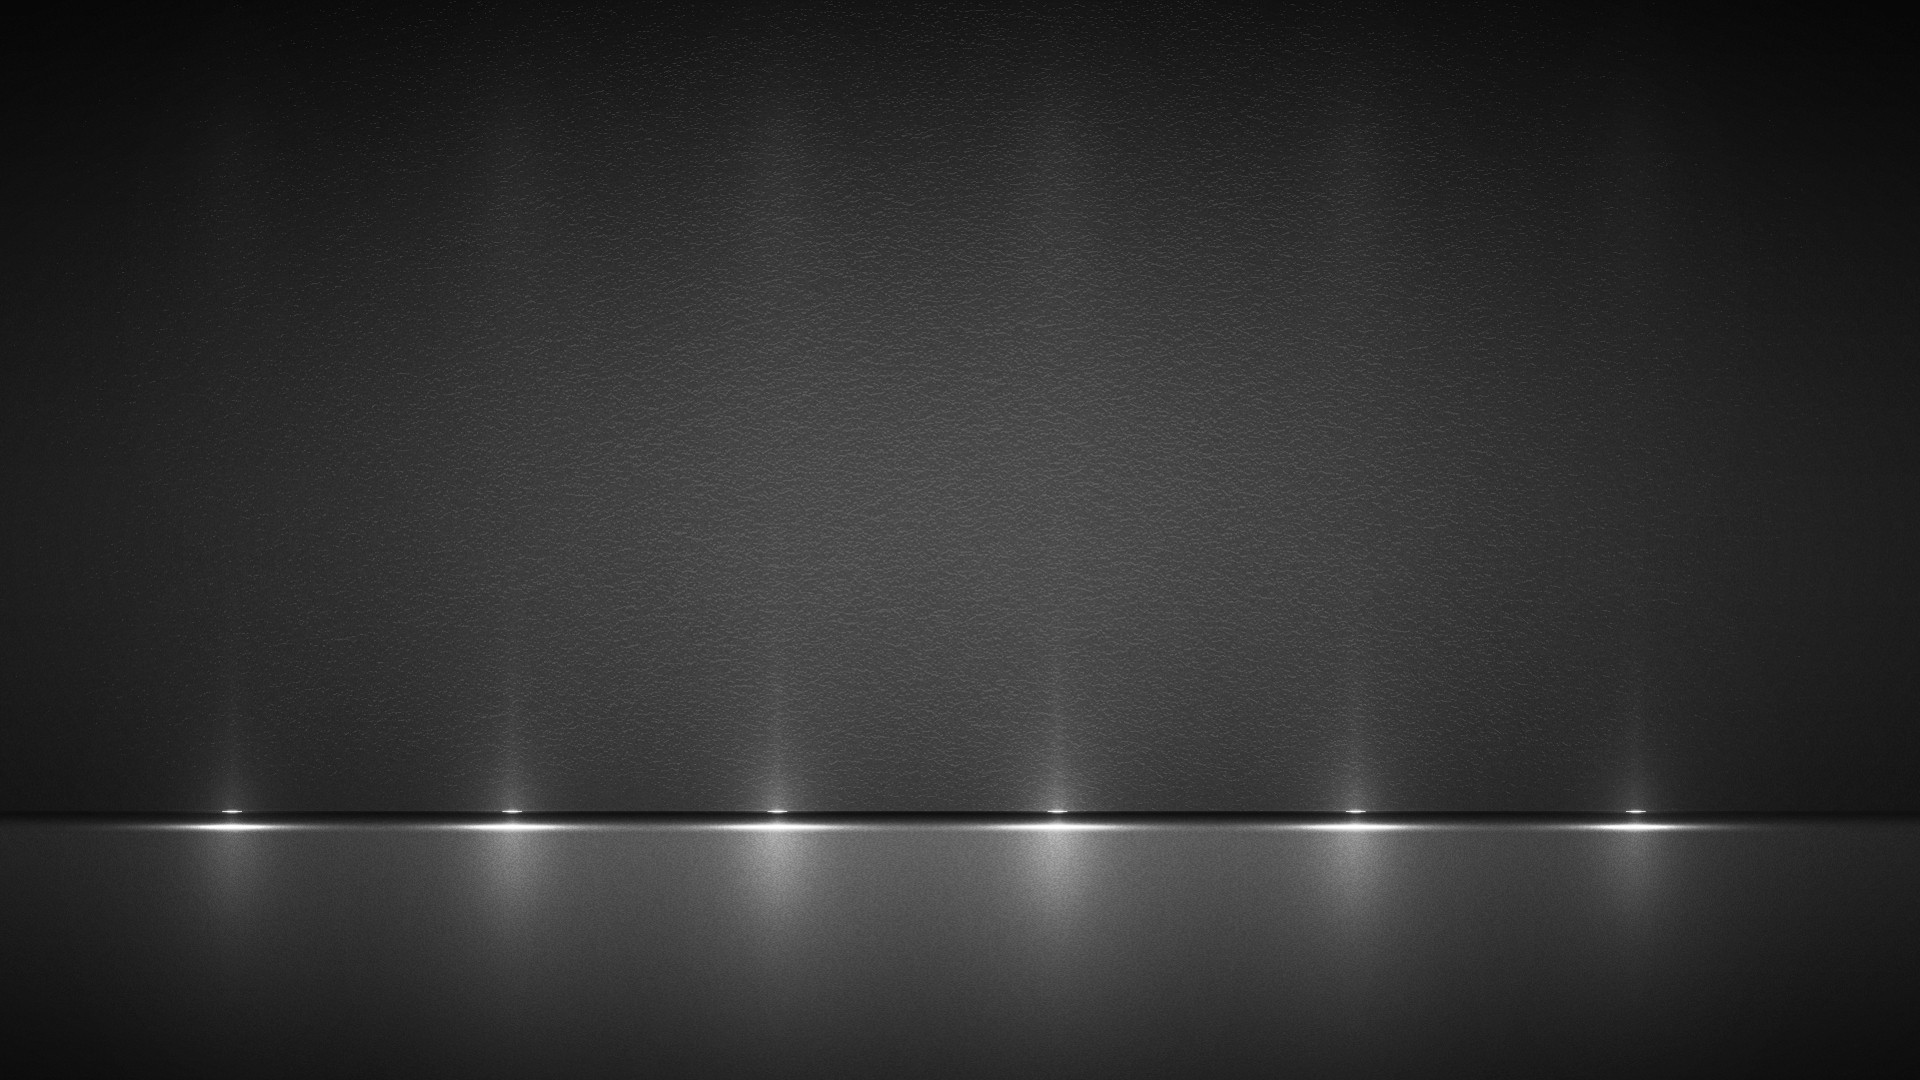 Led Light computer background